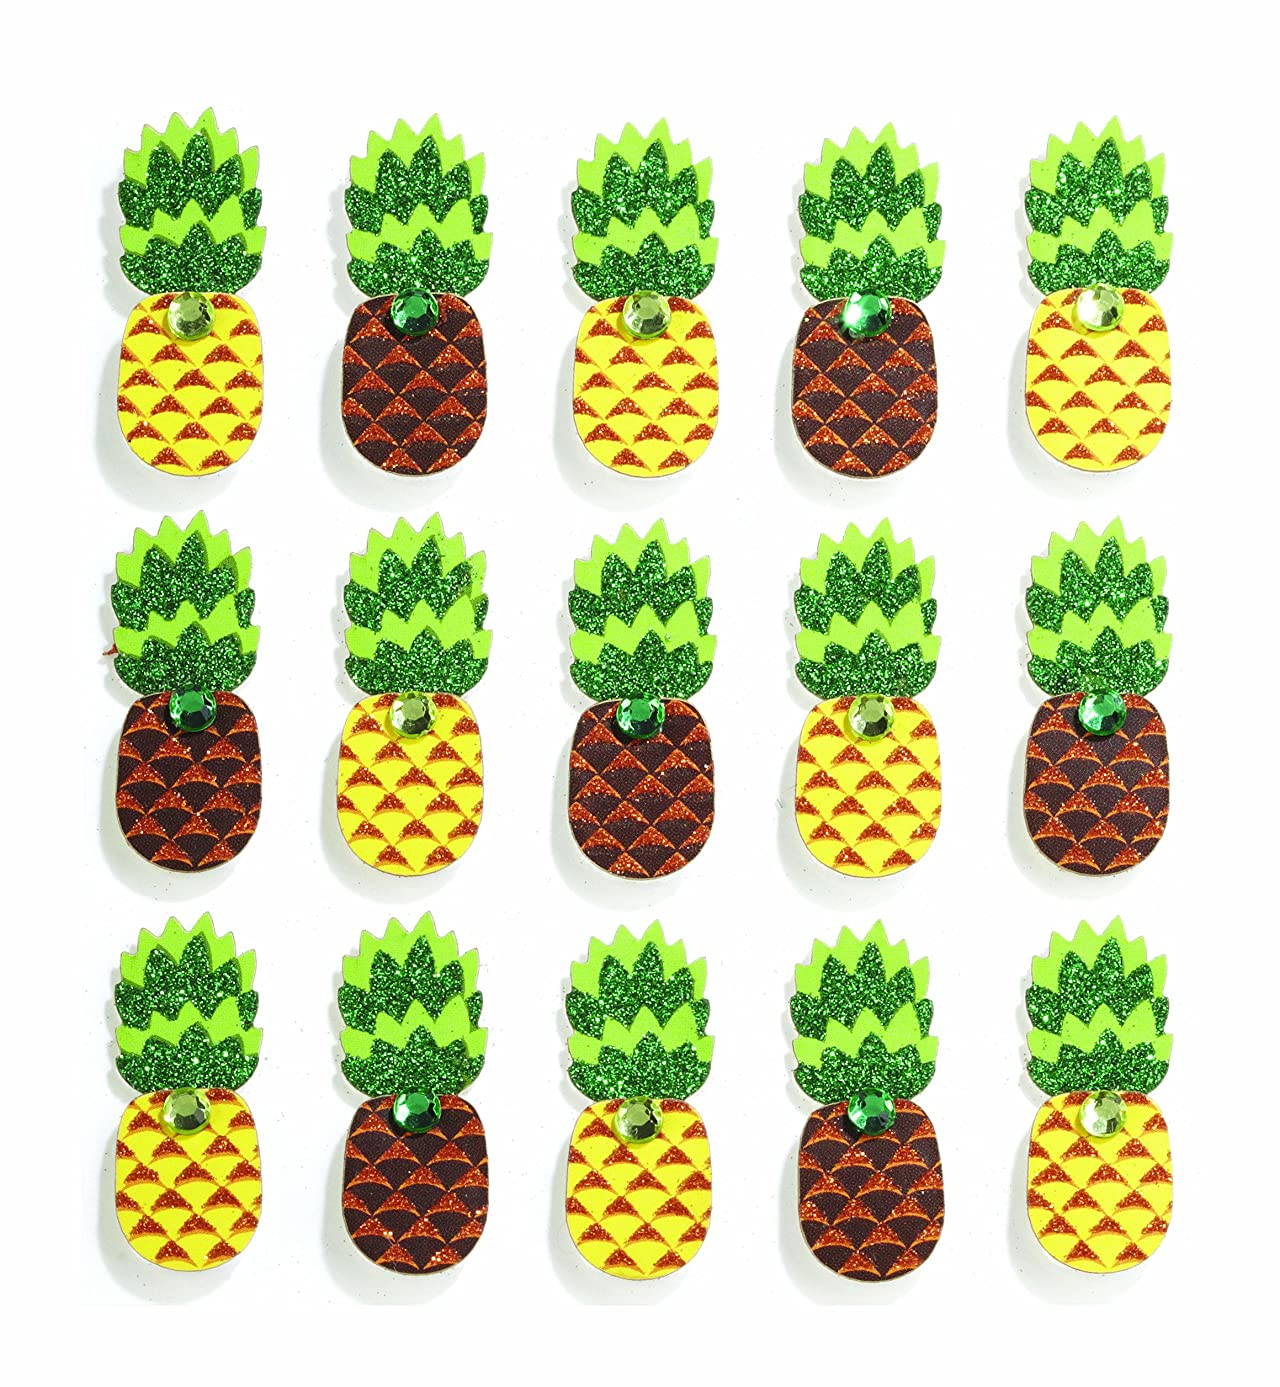 Jolee's Boutique Repeats Dimensional Stickers, Pineapple